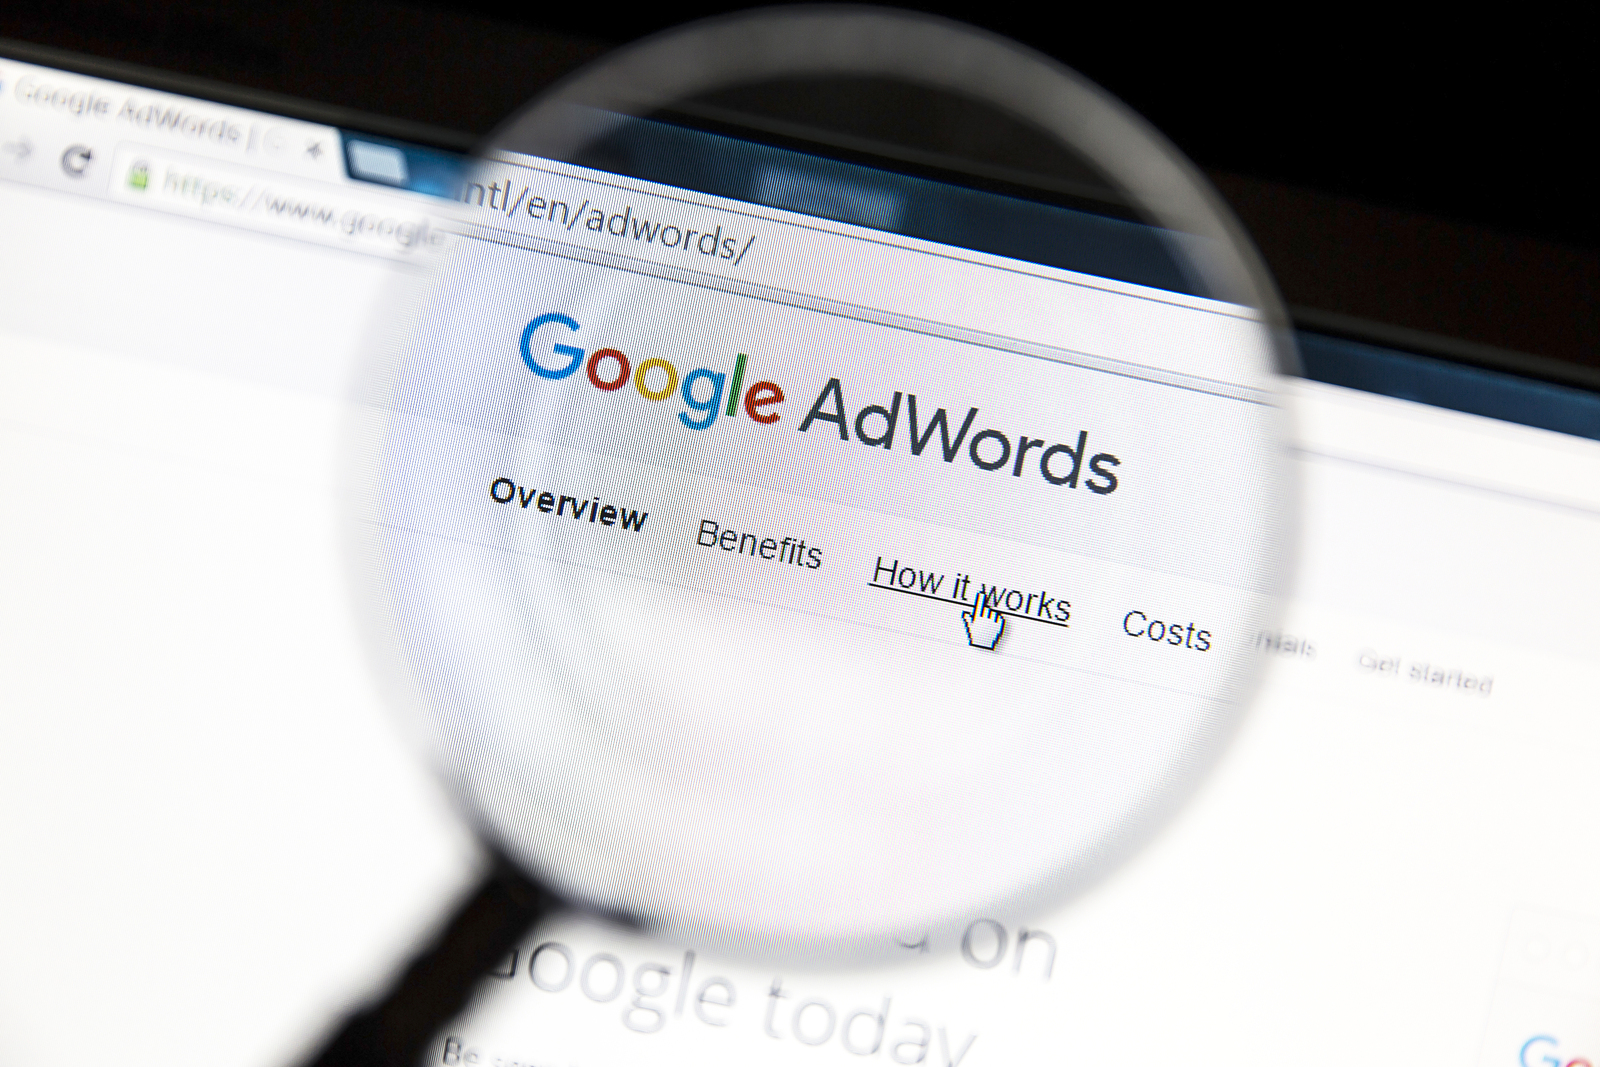 complete guide on how to optimize adwords campaigns